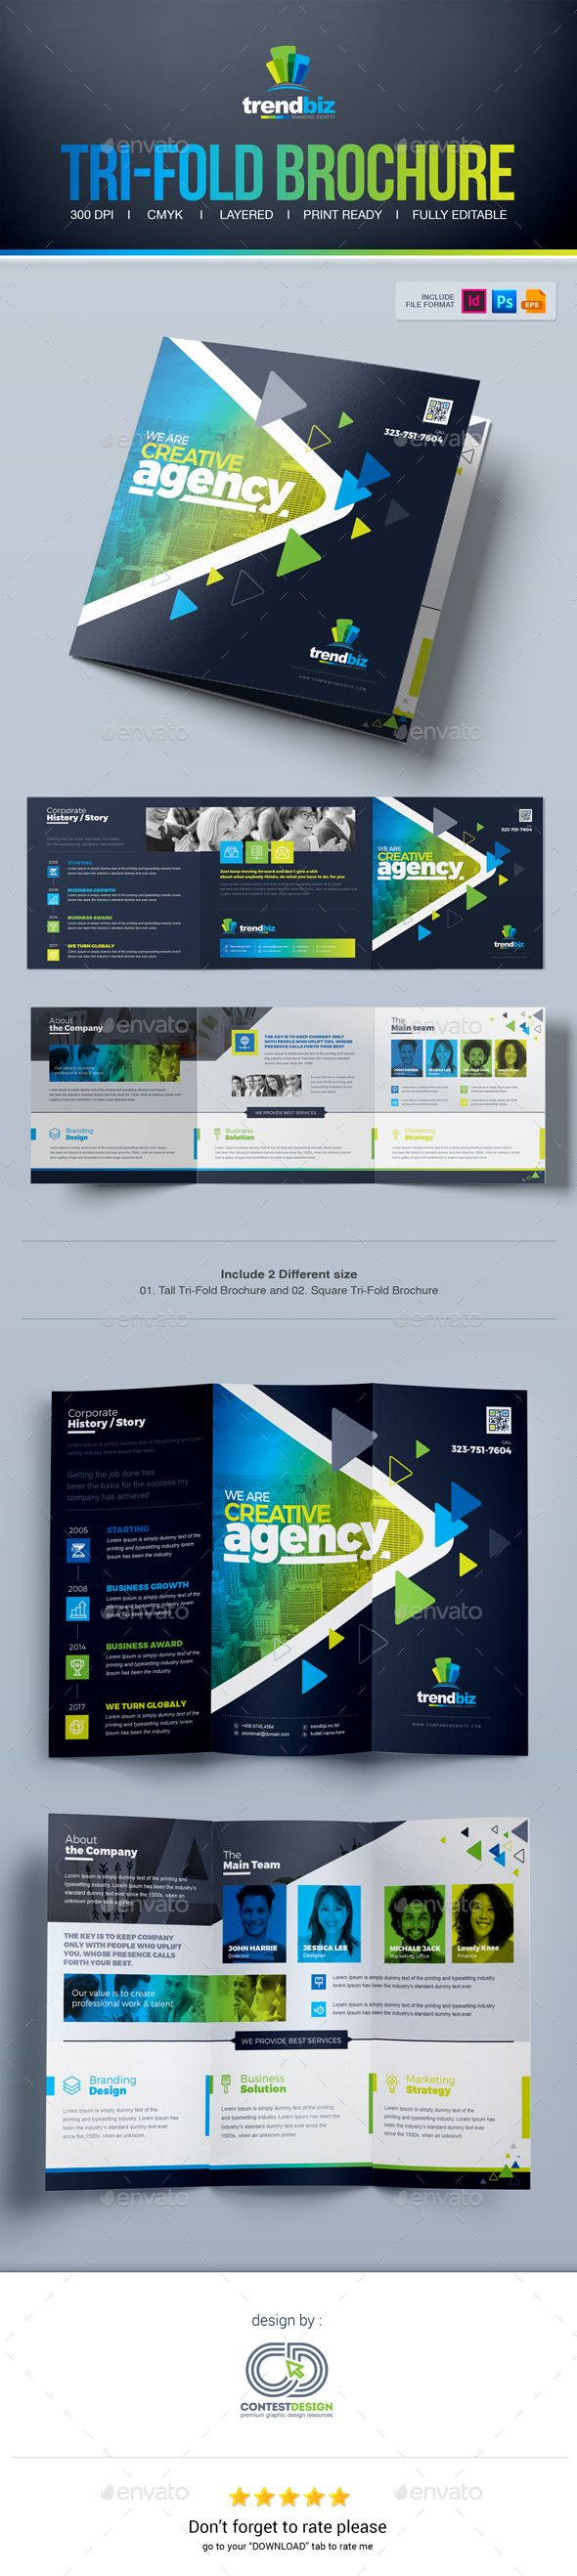 Tri Fold Brochure Template / Square Tri-Fold Brochure Design - PSD, Vector EPS, InDesign INDD, AI Illustrator